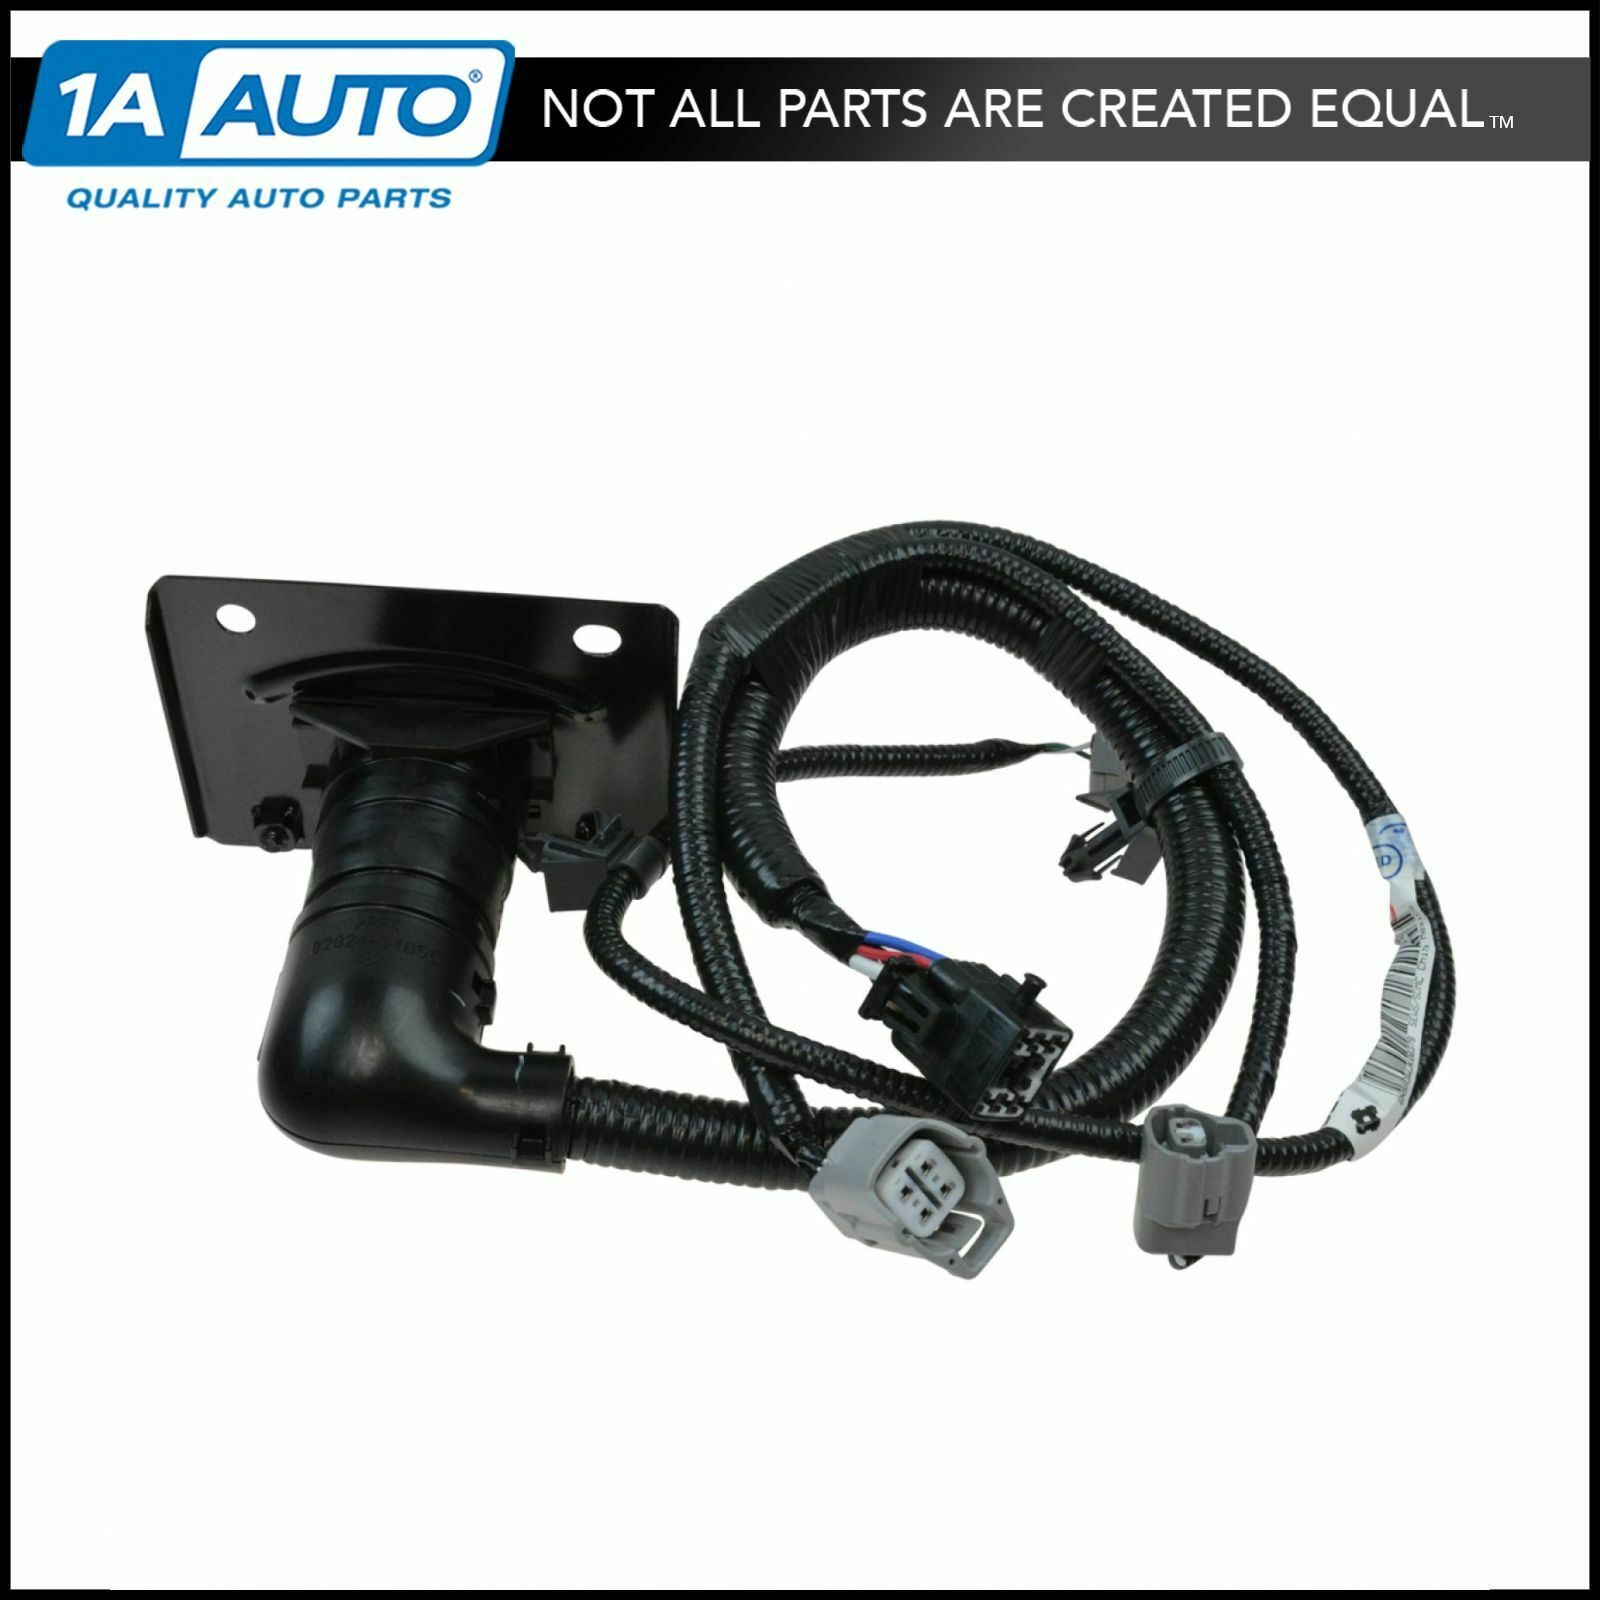 Oem Trailer Tow Hitch Wiring Harness 7 Pin Connector For Toyota 2014 Nissan Pathfinder 1 Of 6only Available